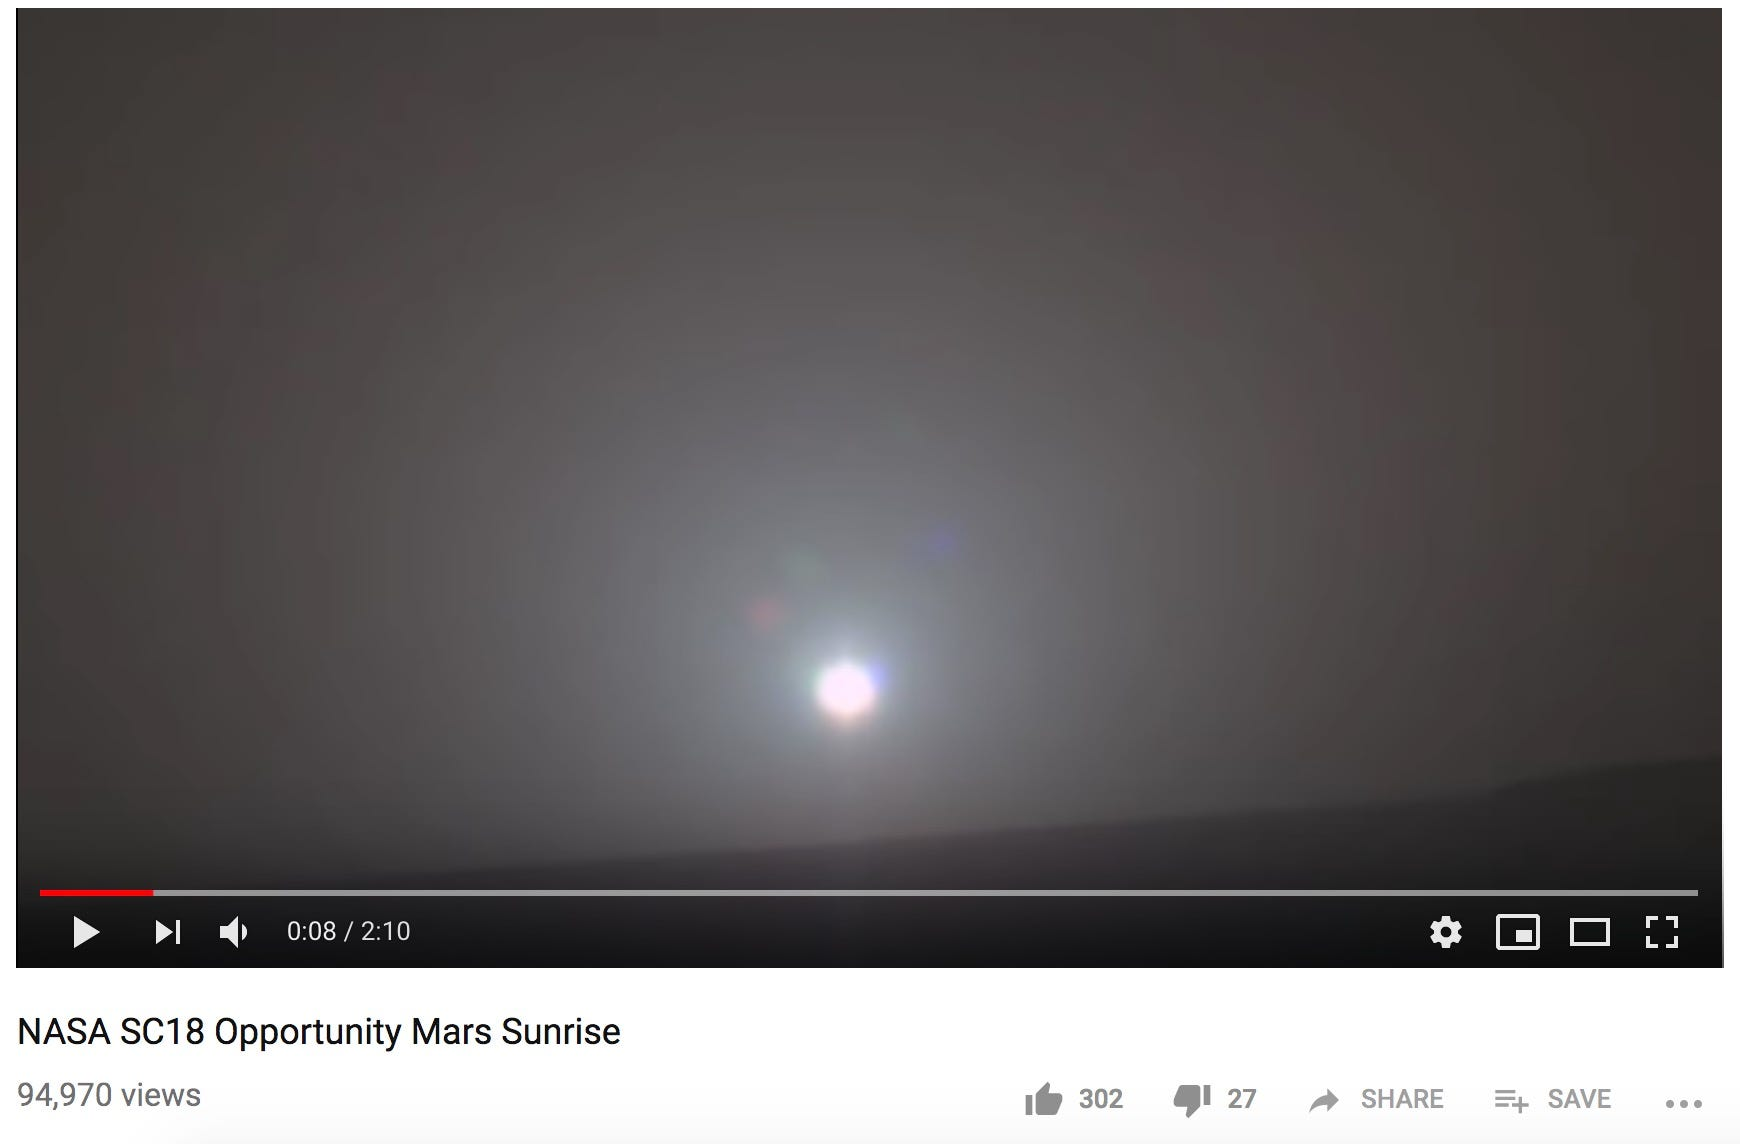 Scientists turned a Mars sunrise photo into music using data from NASA's Opportunity rover, and it's beautiful | AZ Central